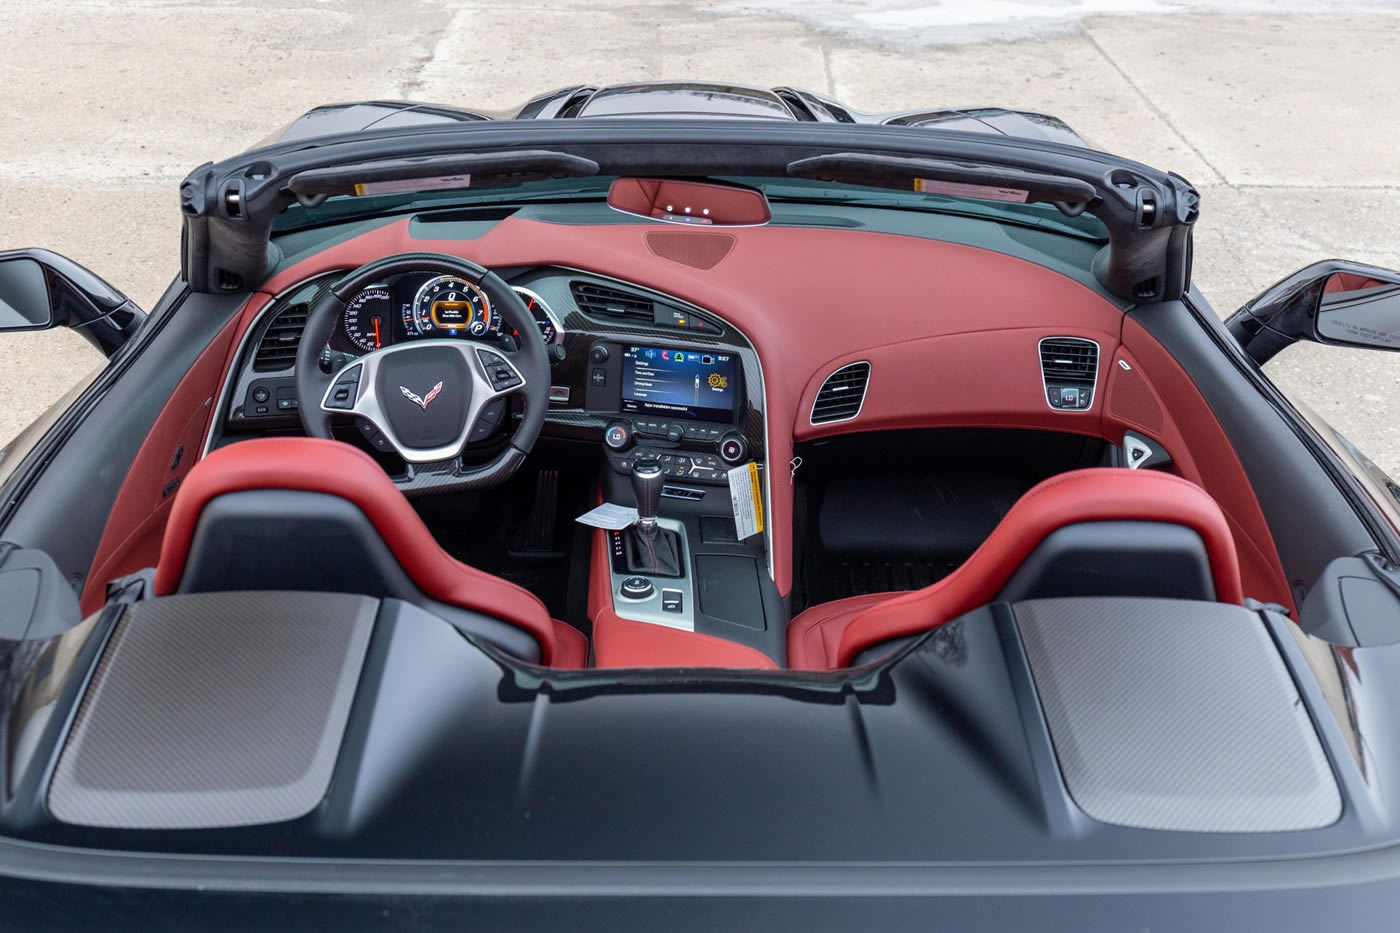 2019 Corvette ZR1 - Number 2148